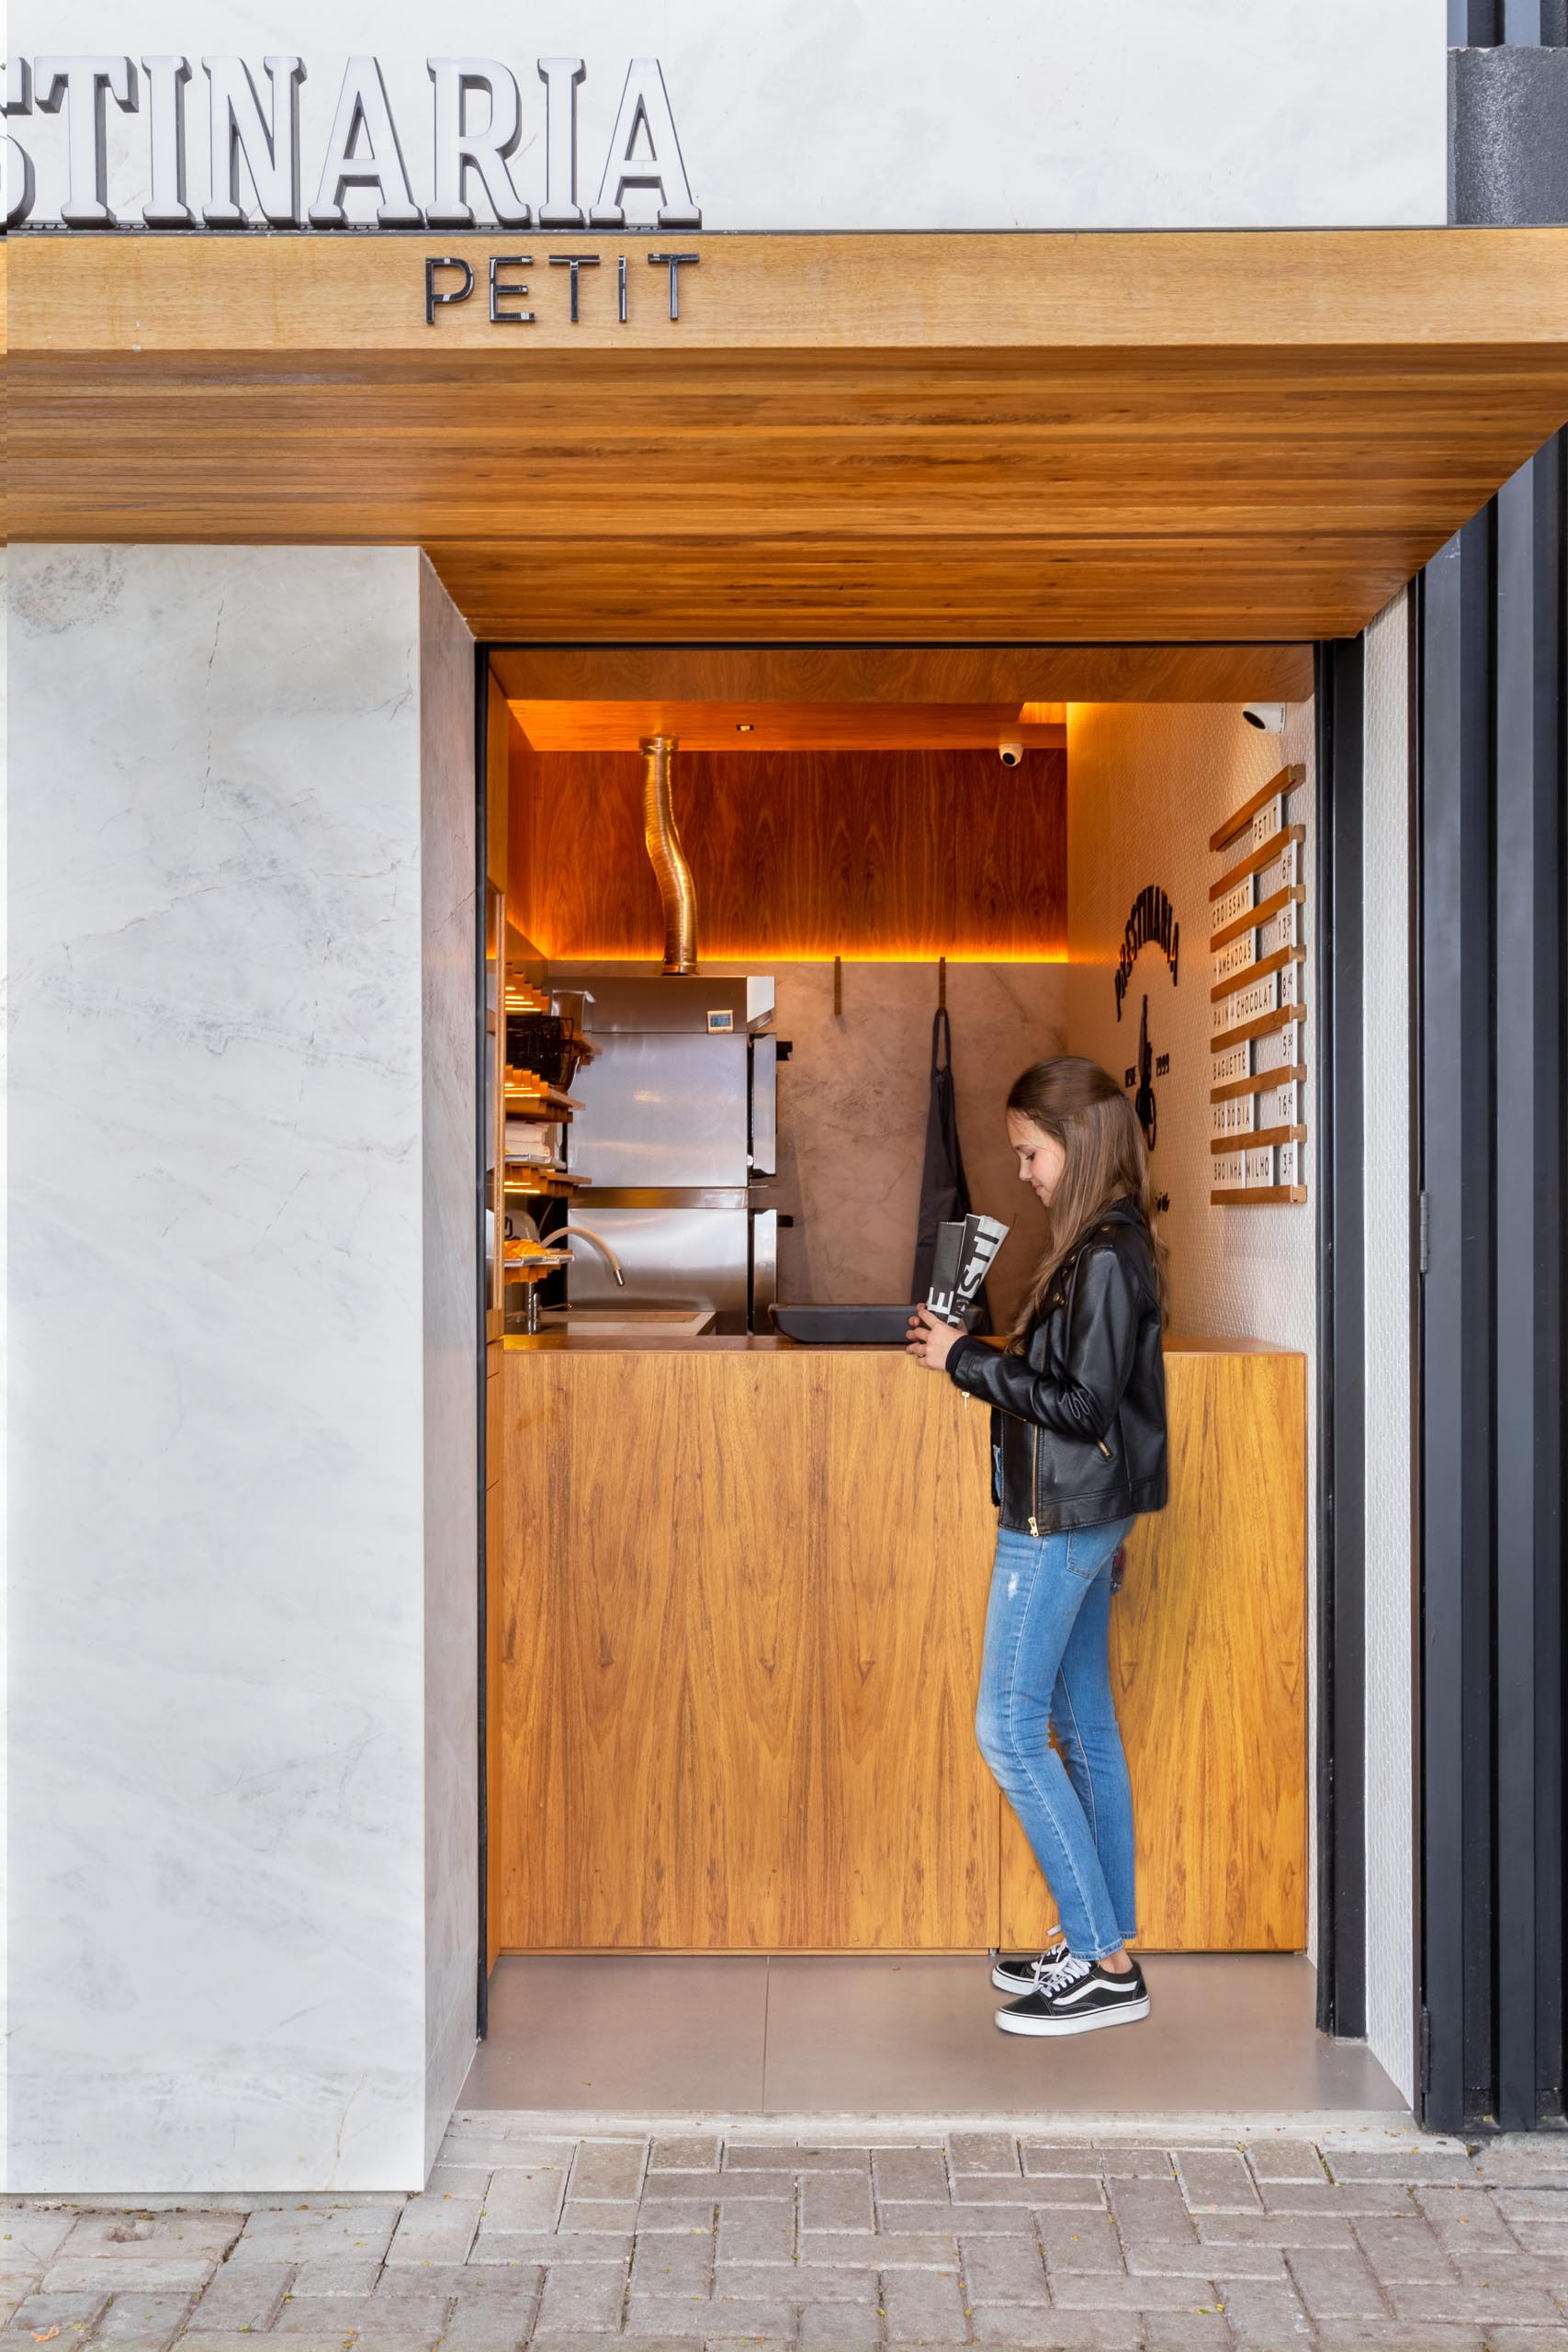 A small bakery makes use of wood dowels with hidden LED lighting to hold up shelving.